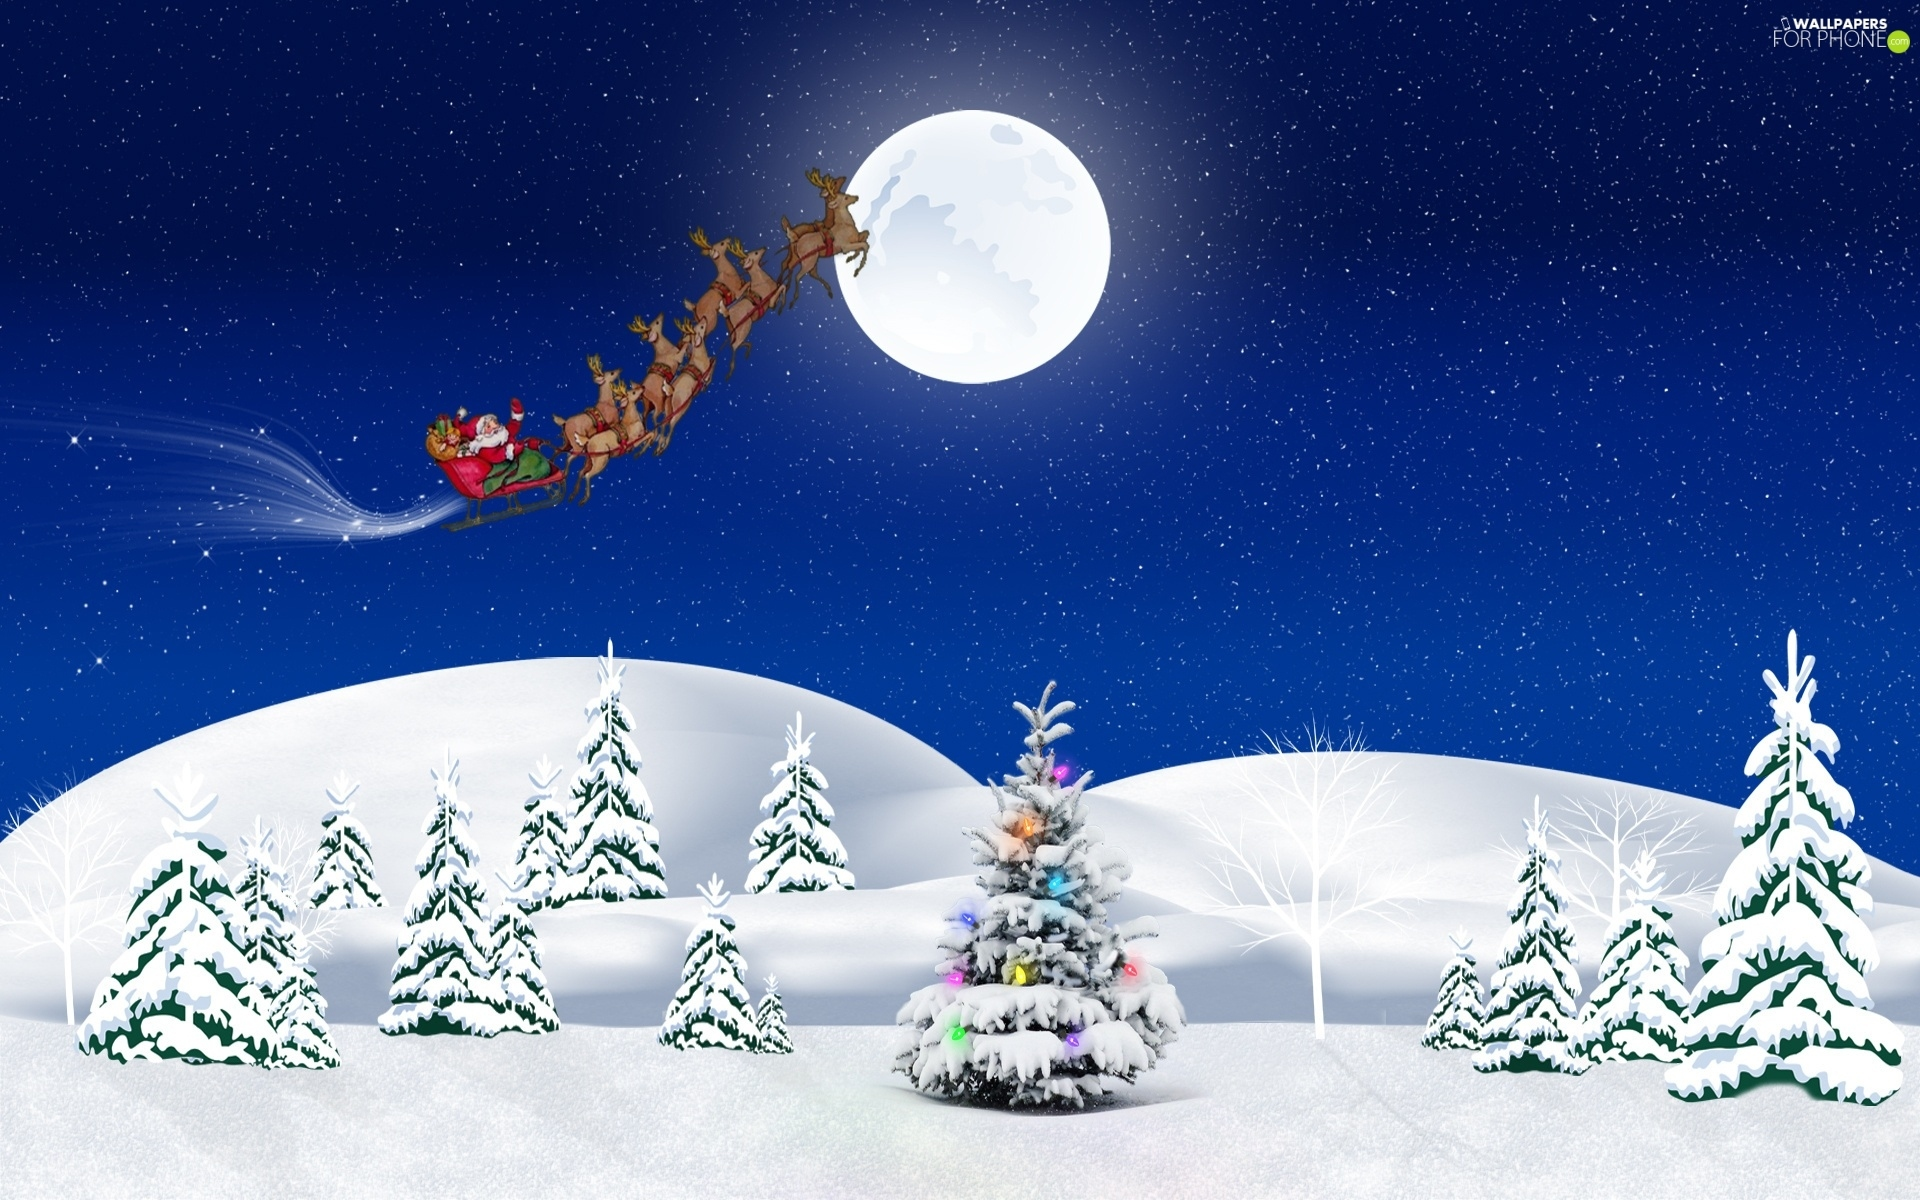 Santa, sleigh, birth, moon, God, christmas tree, Mountains, winter